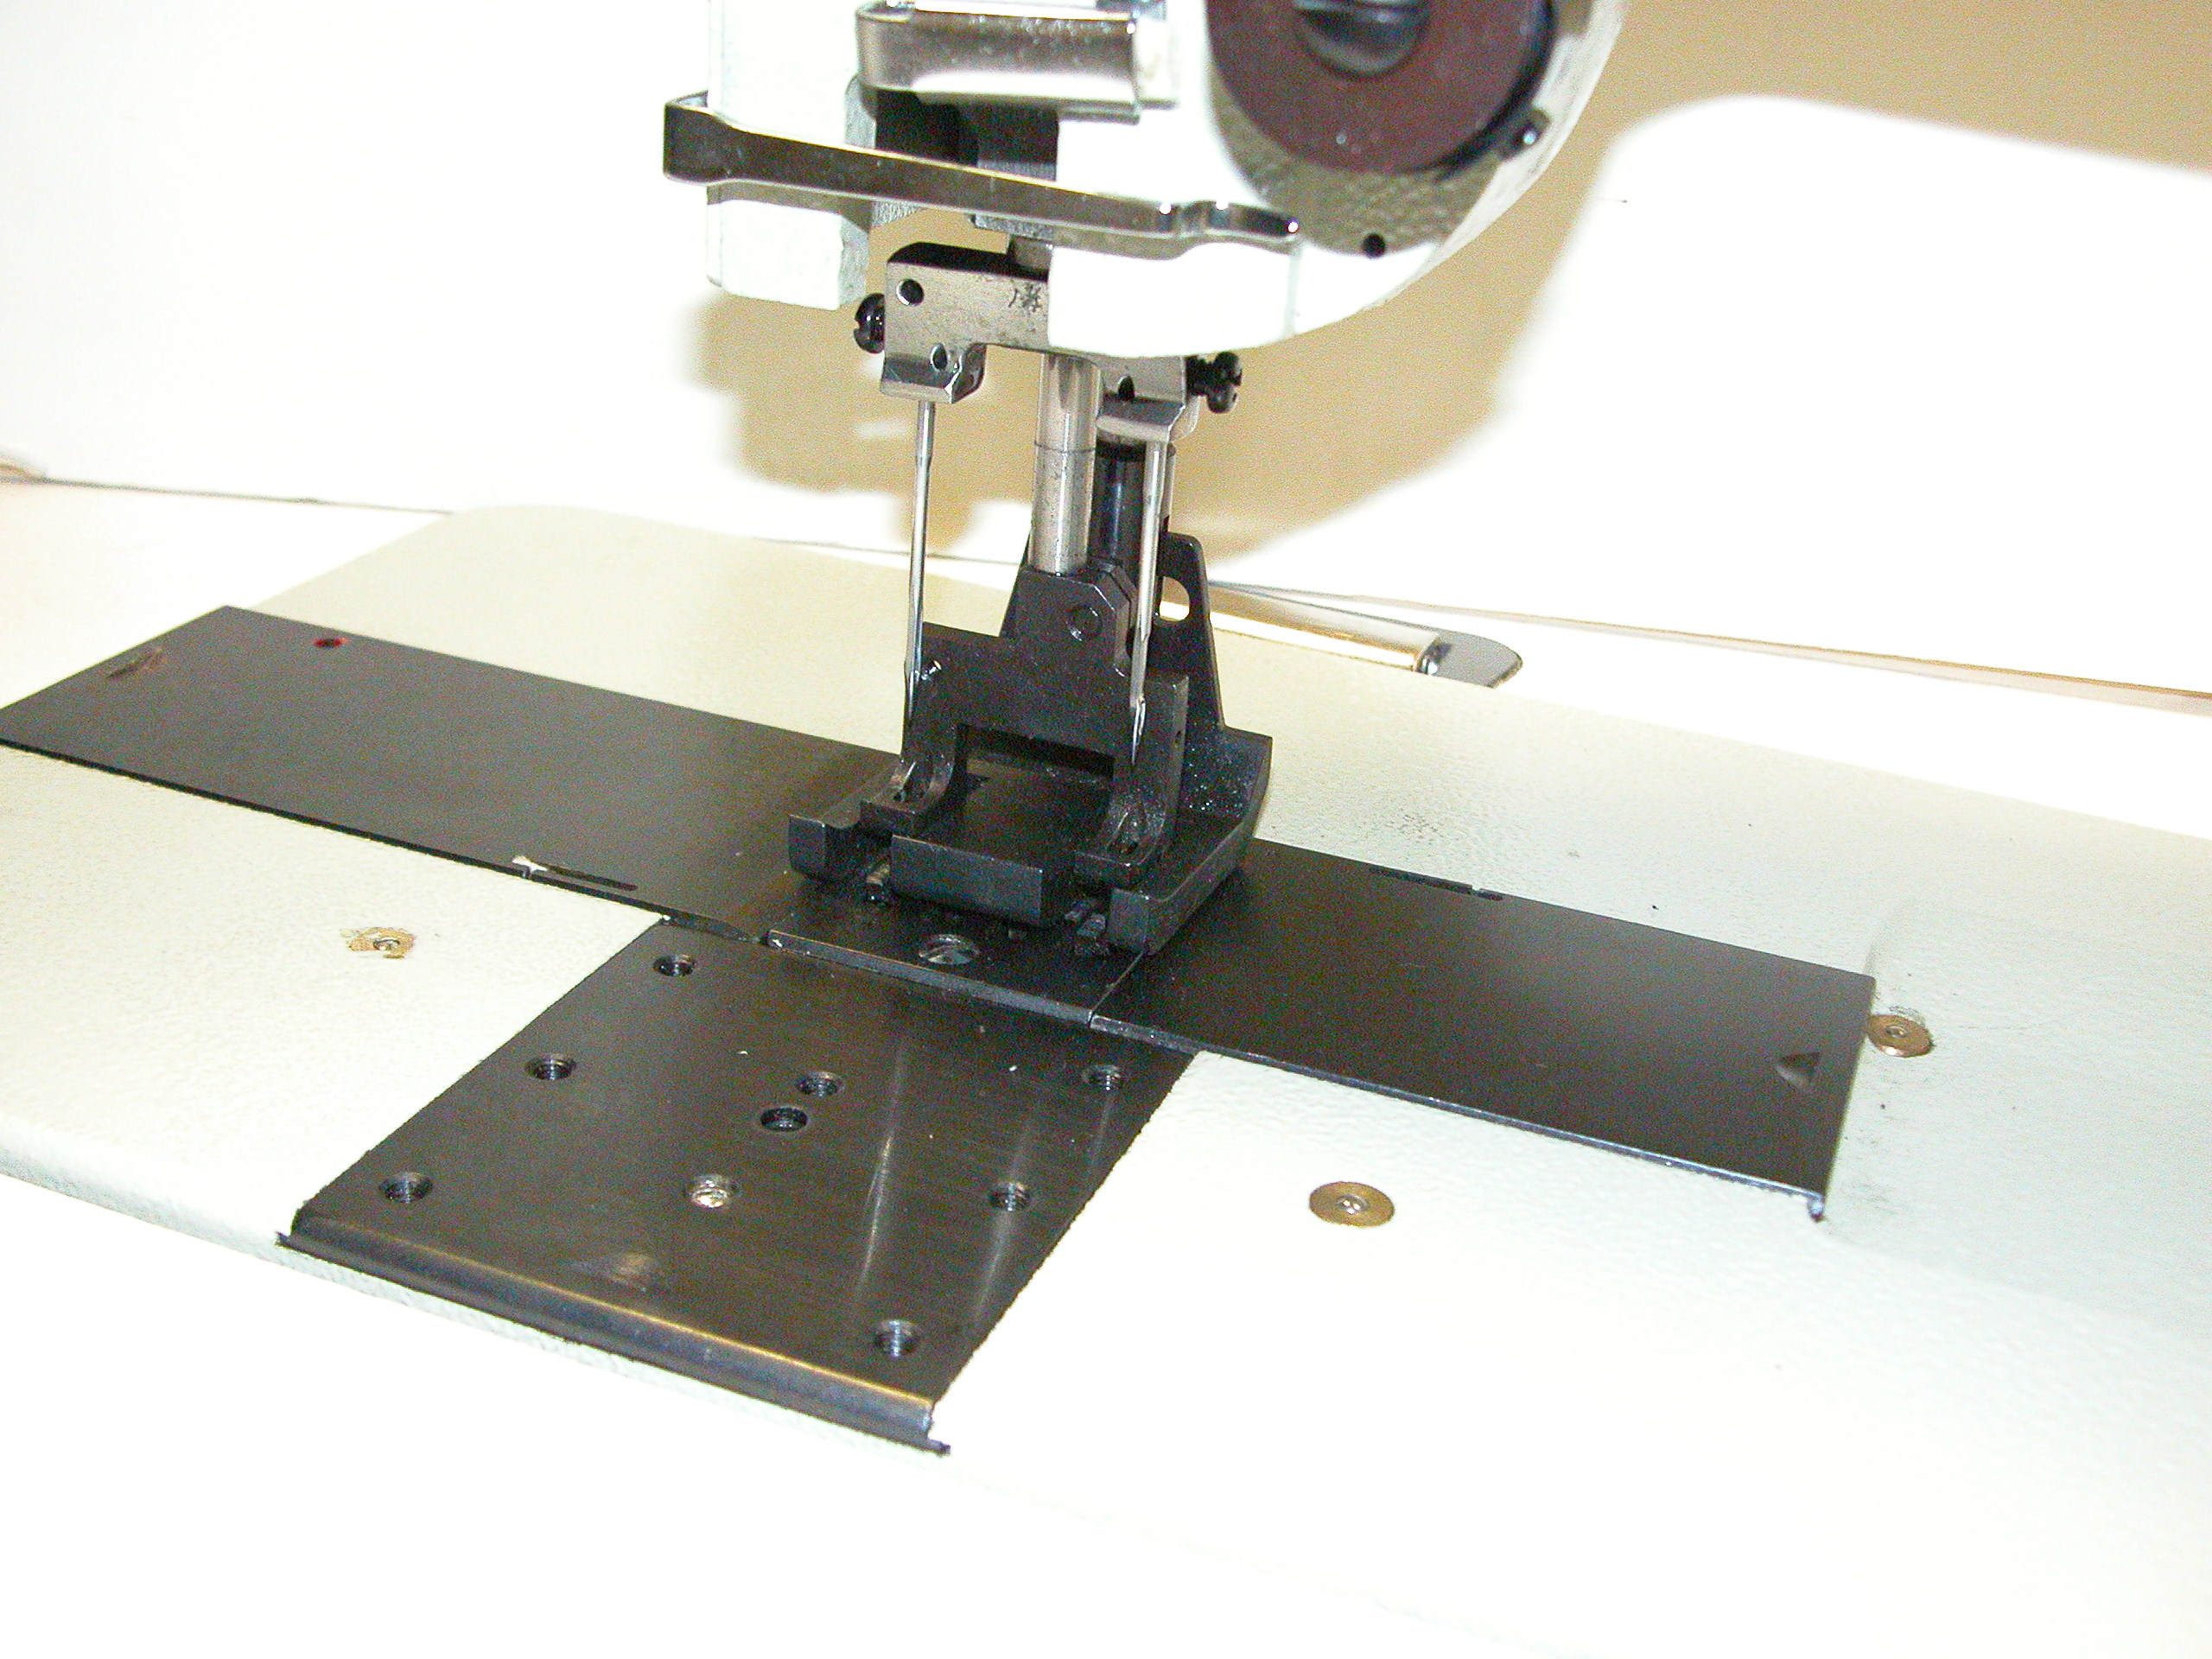 Typical TW28-BL12 Sewing Machine